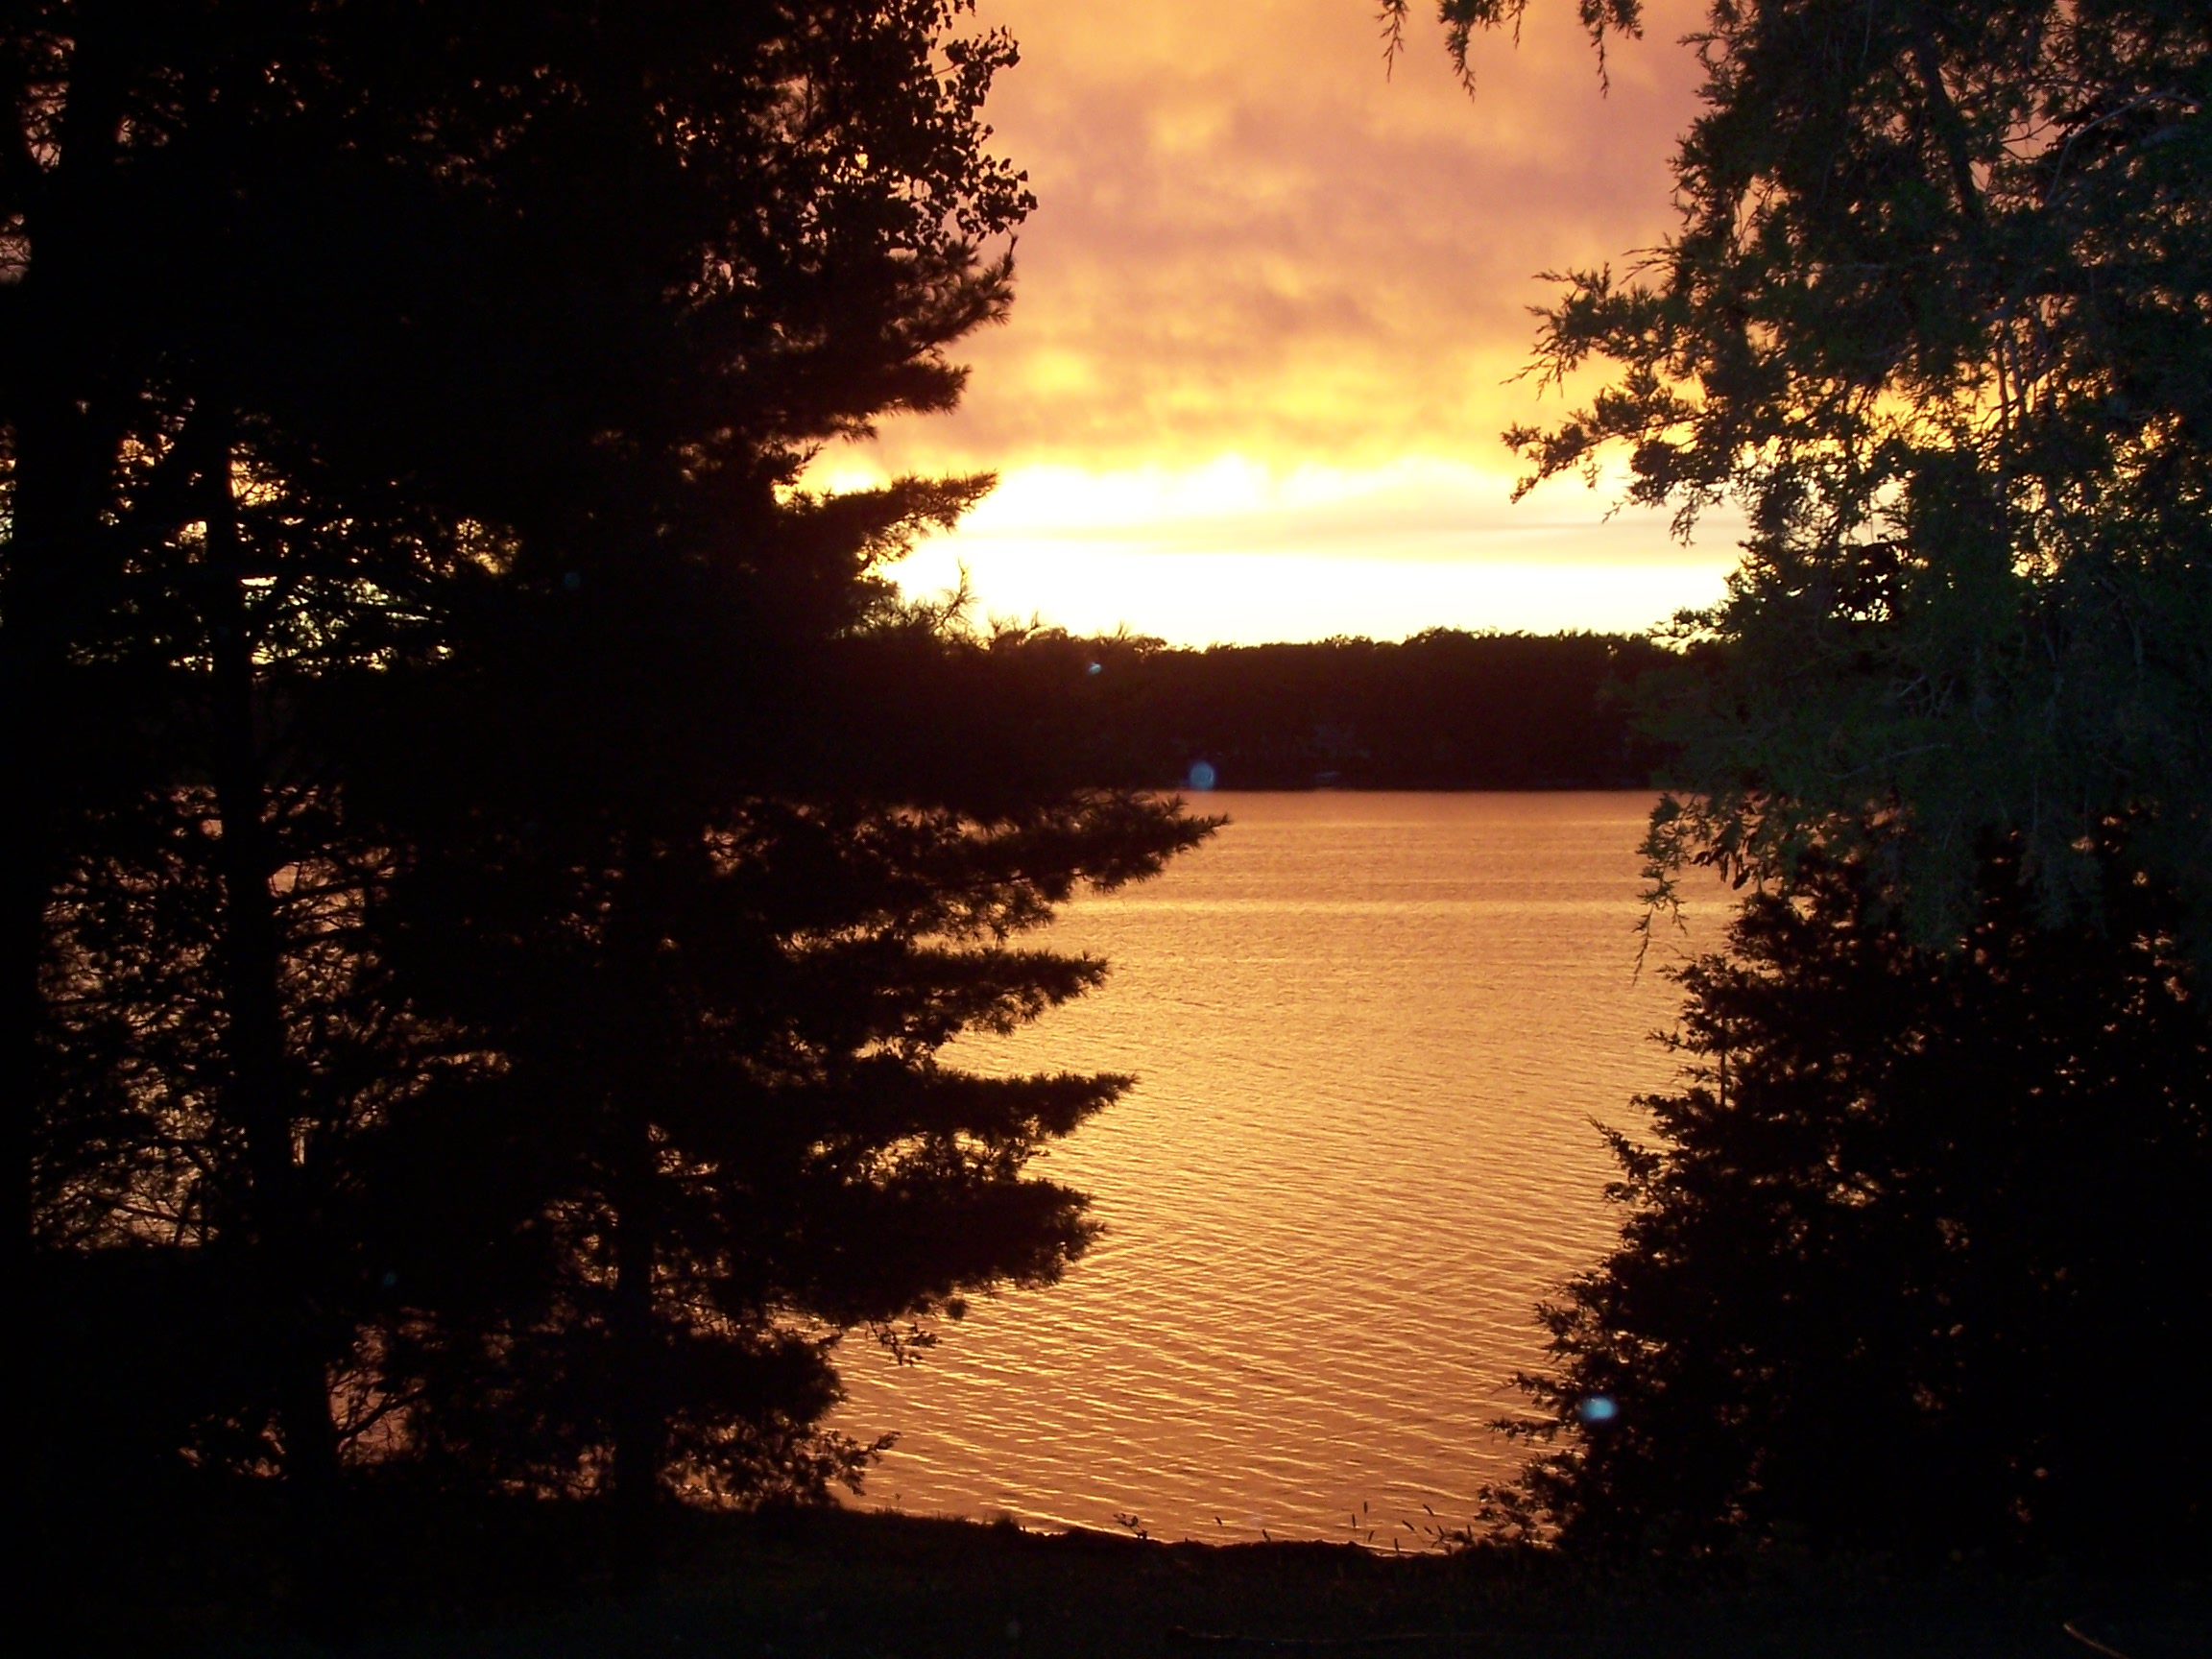 Sunset on Indian Lake